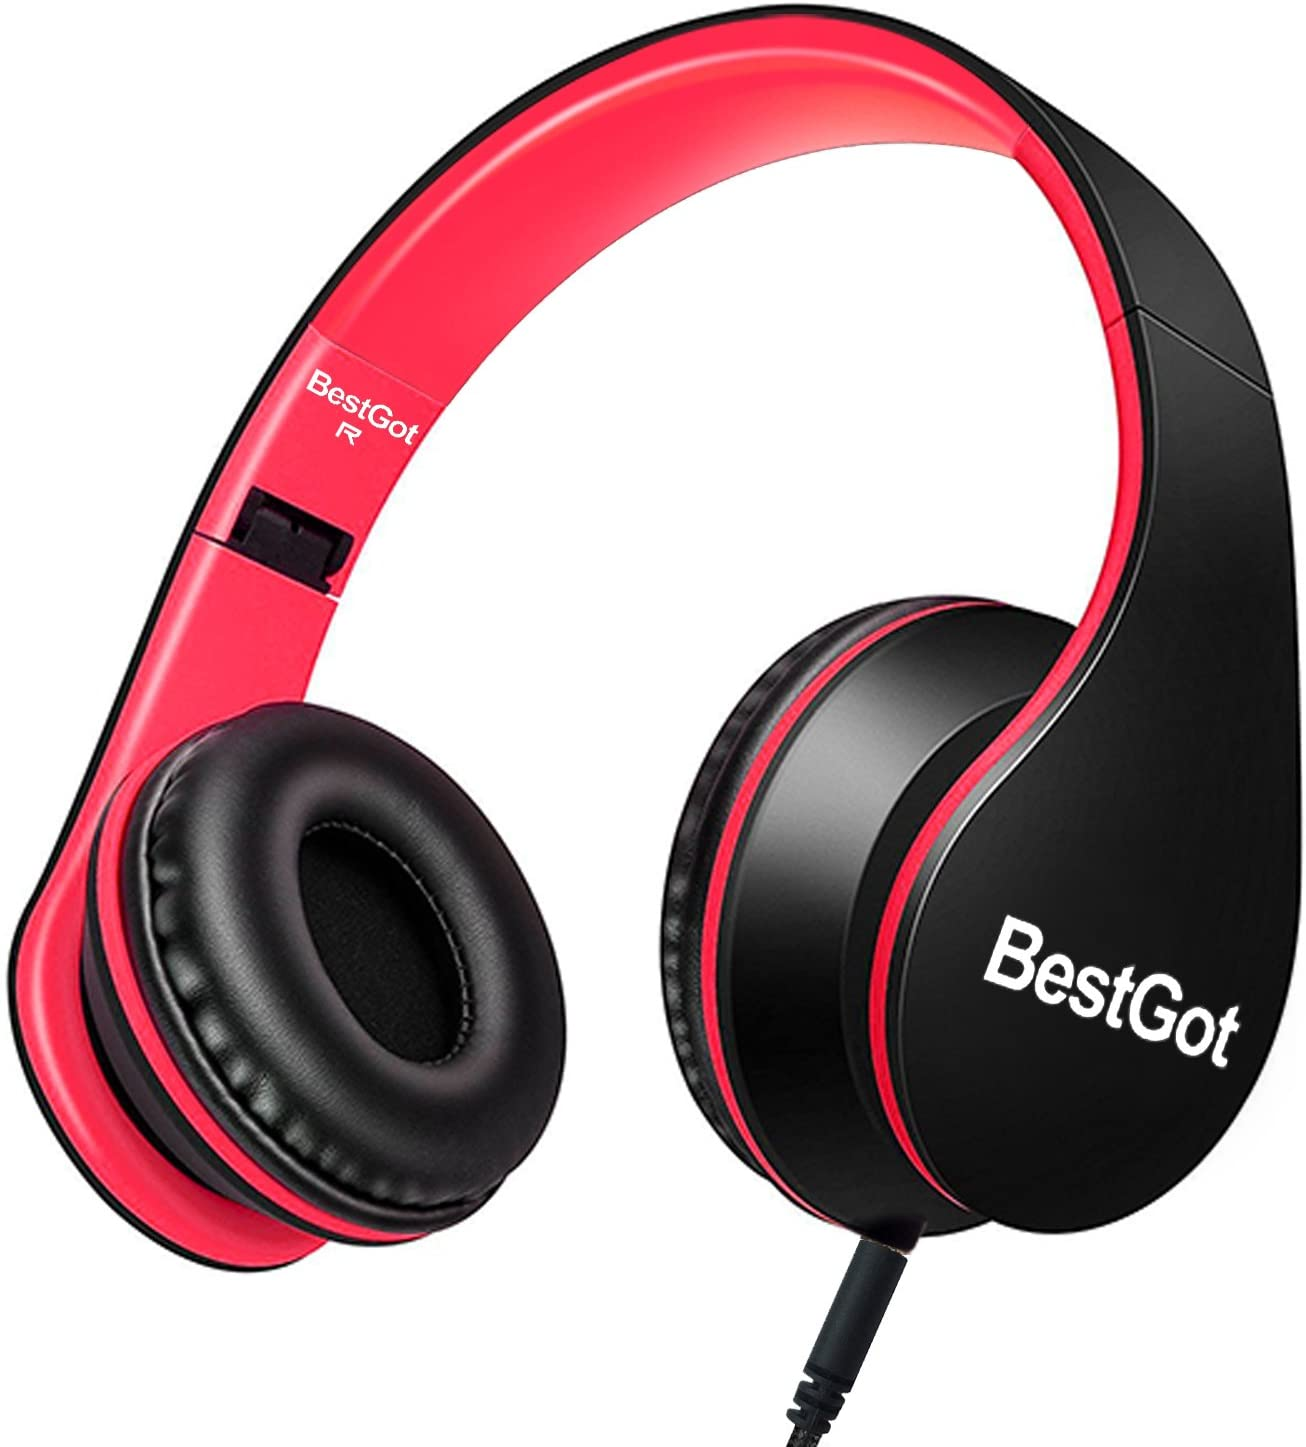 BestGot Kids Headphones for Kids Boys Over Ear Kids Headphones with Microphone in-line Volume with Cloth Bag Foldable Headphones with 3.5mm Plug Removable Cord (Black/Red)